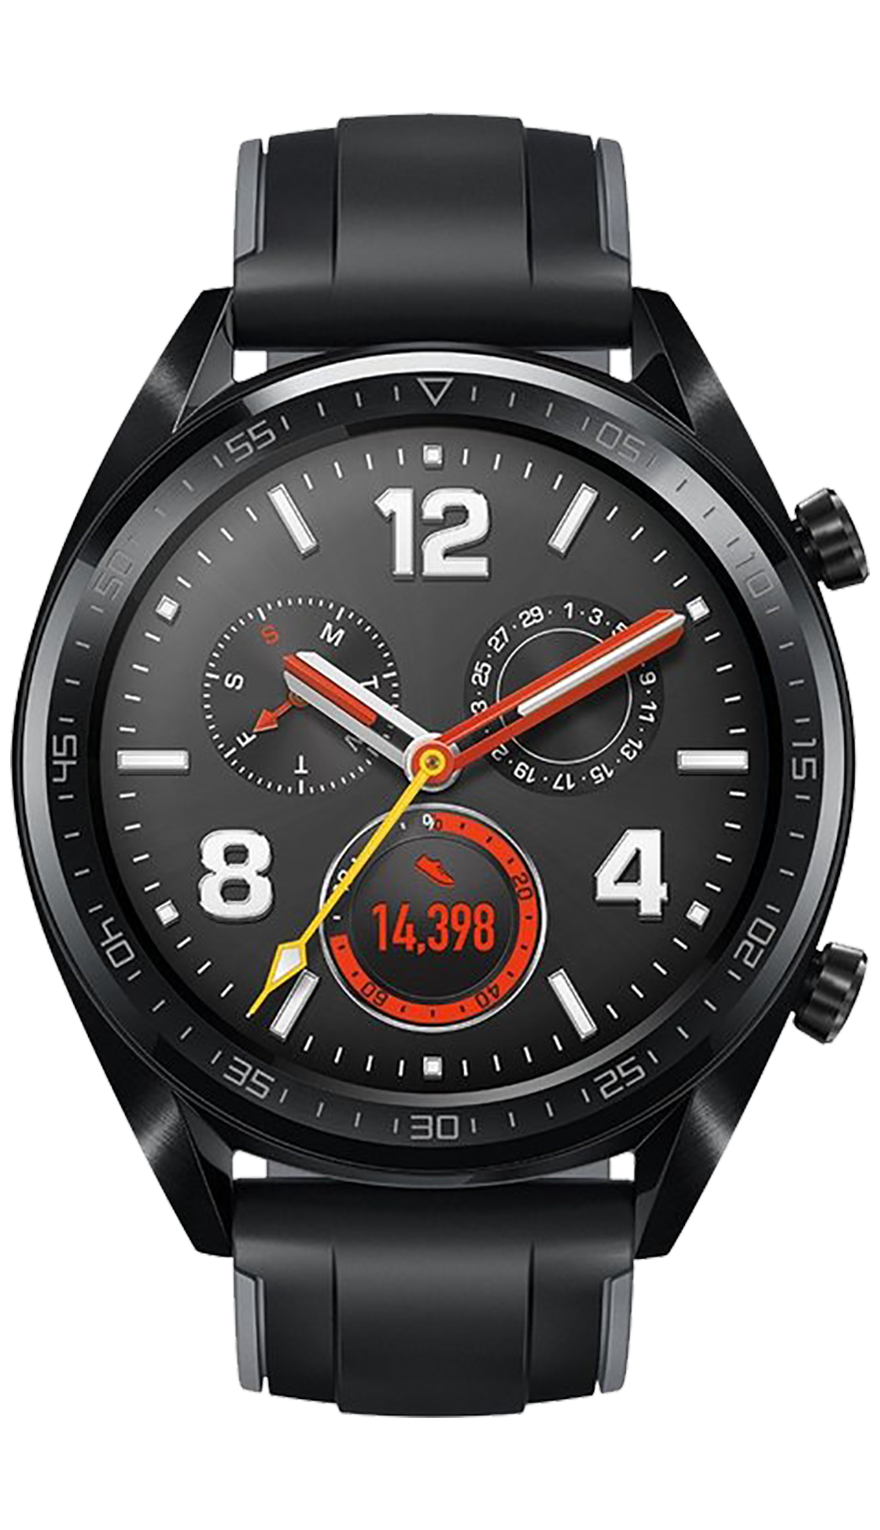 Huawei Watch GT Black Rubber Strap